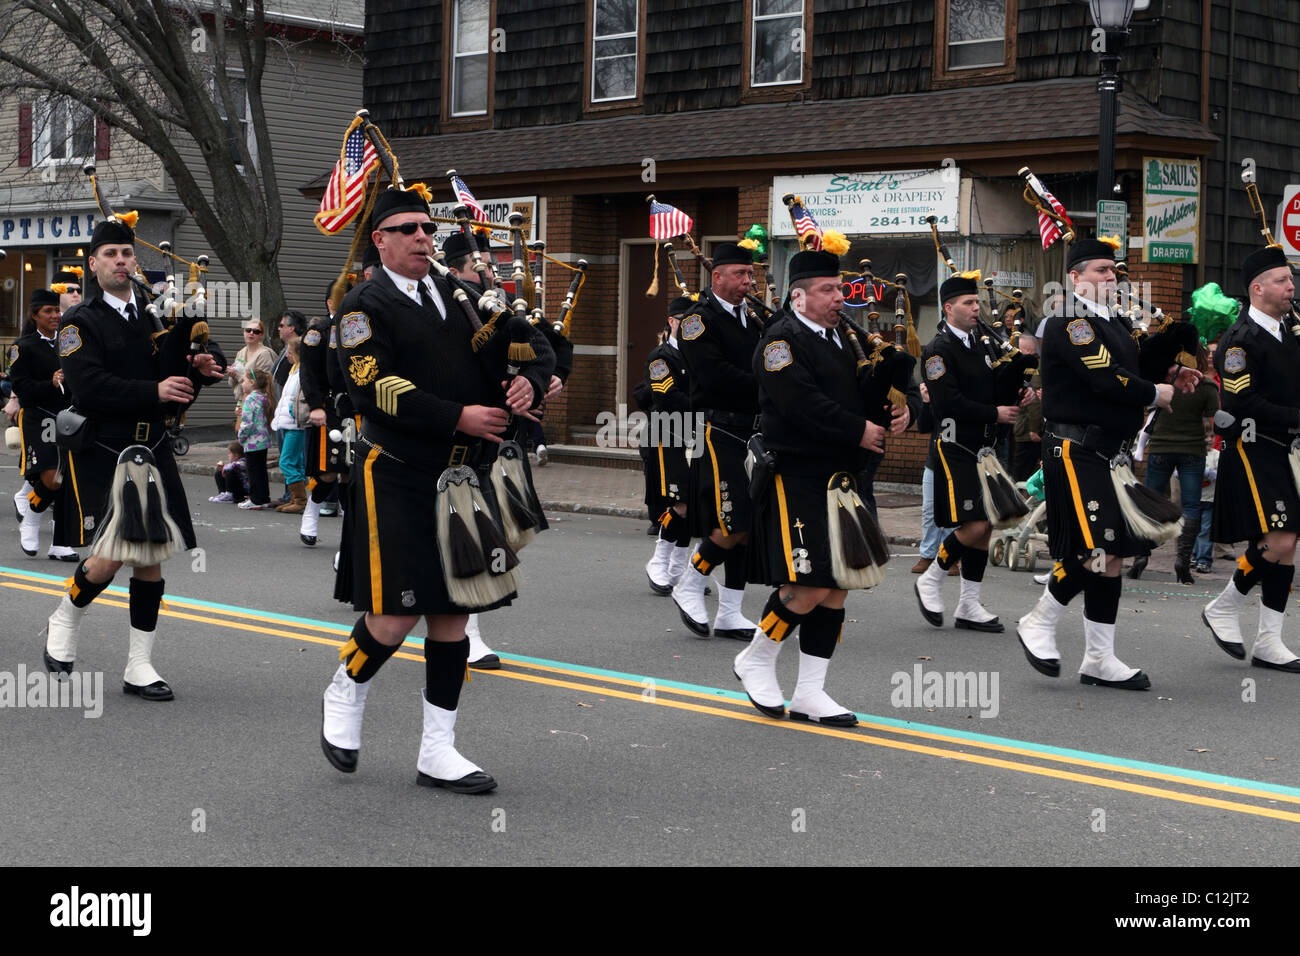 Morris County Police Pipes and Drum corp marching in the local St Patrick's Day Parade. Nutley, New Jersey, - Stock Image